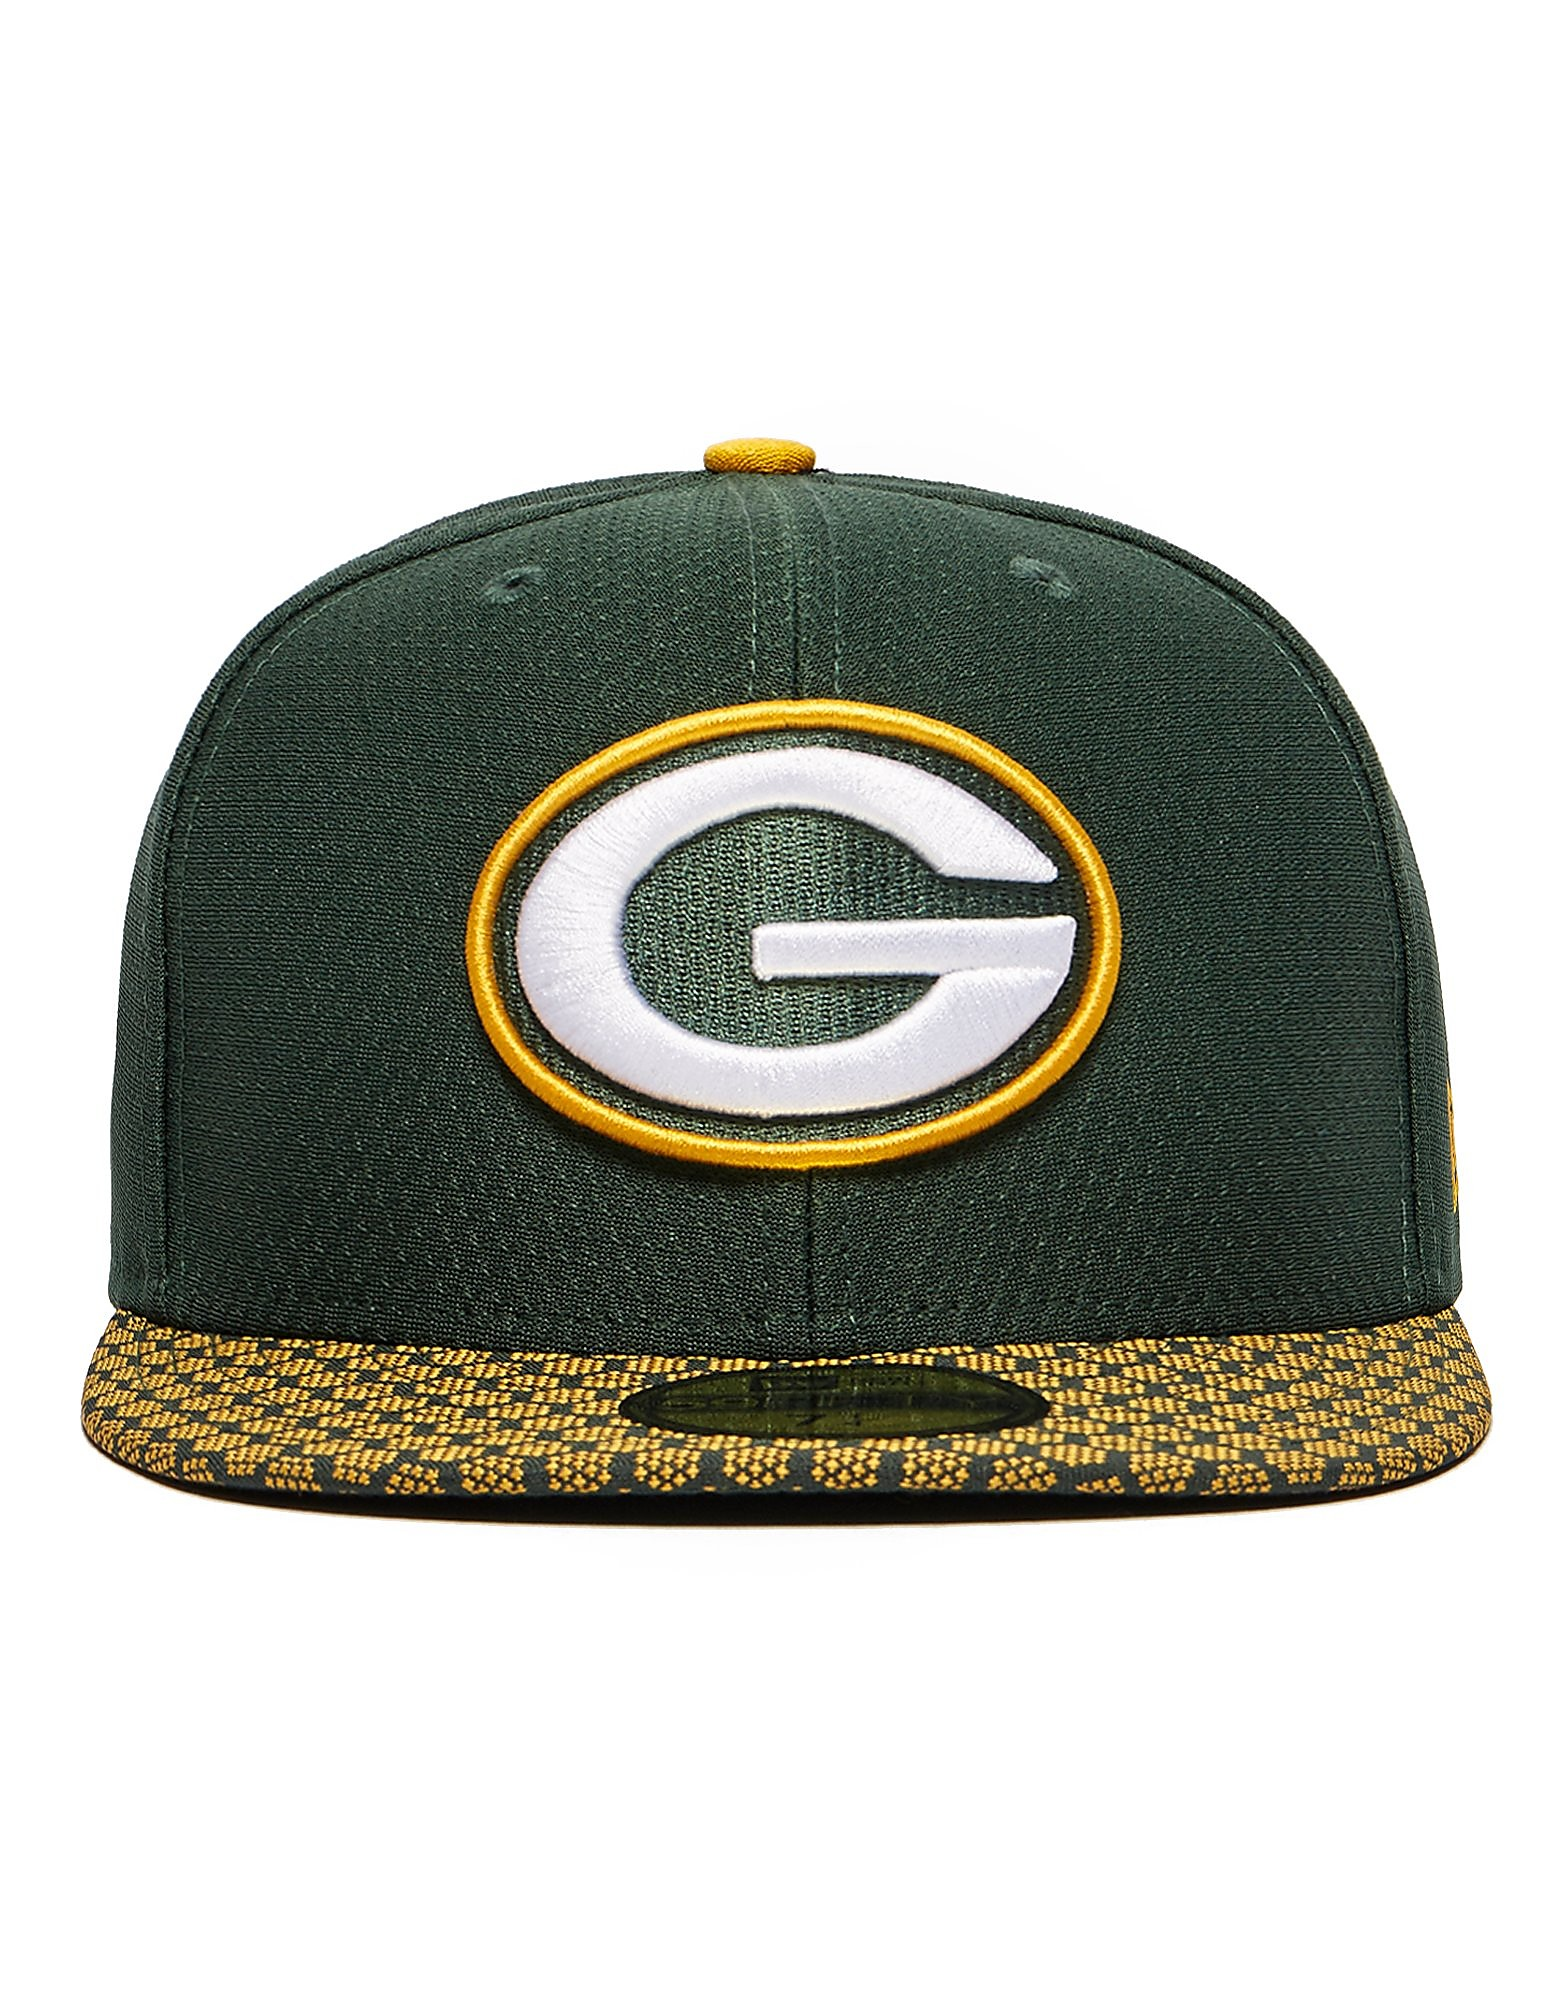 New Era Green Bay Packers 59Fifty Cappellino